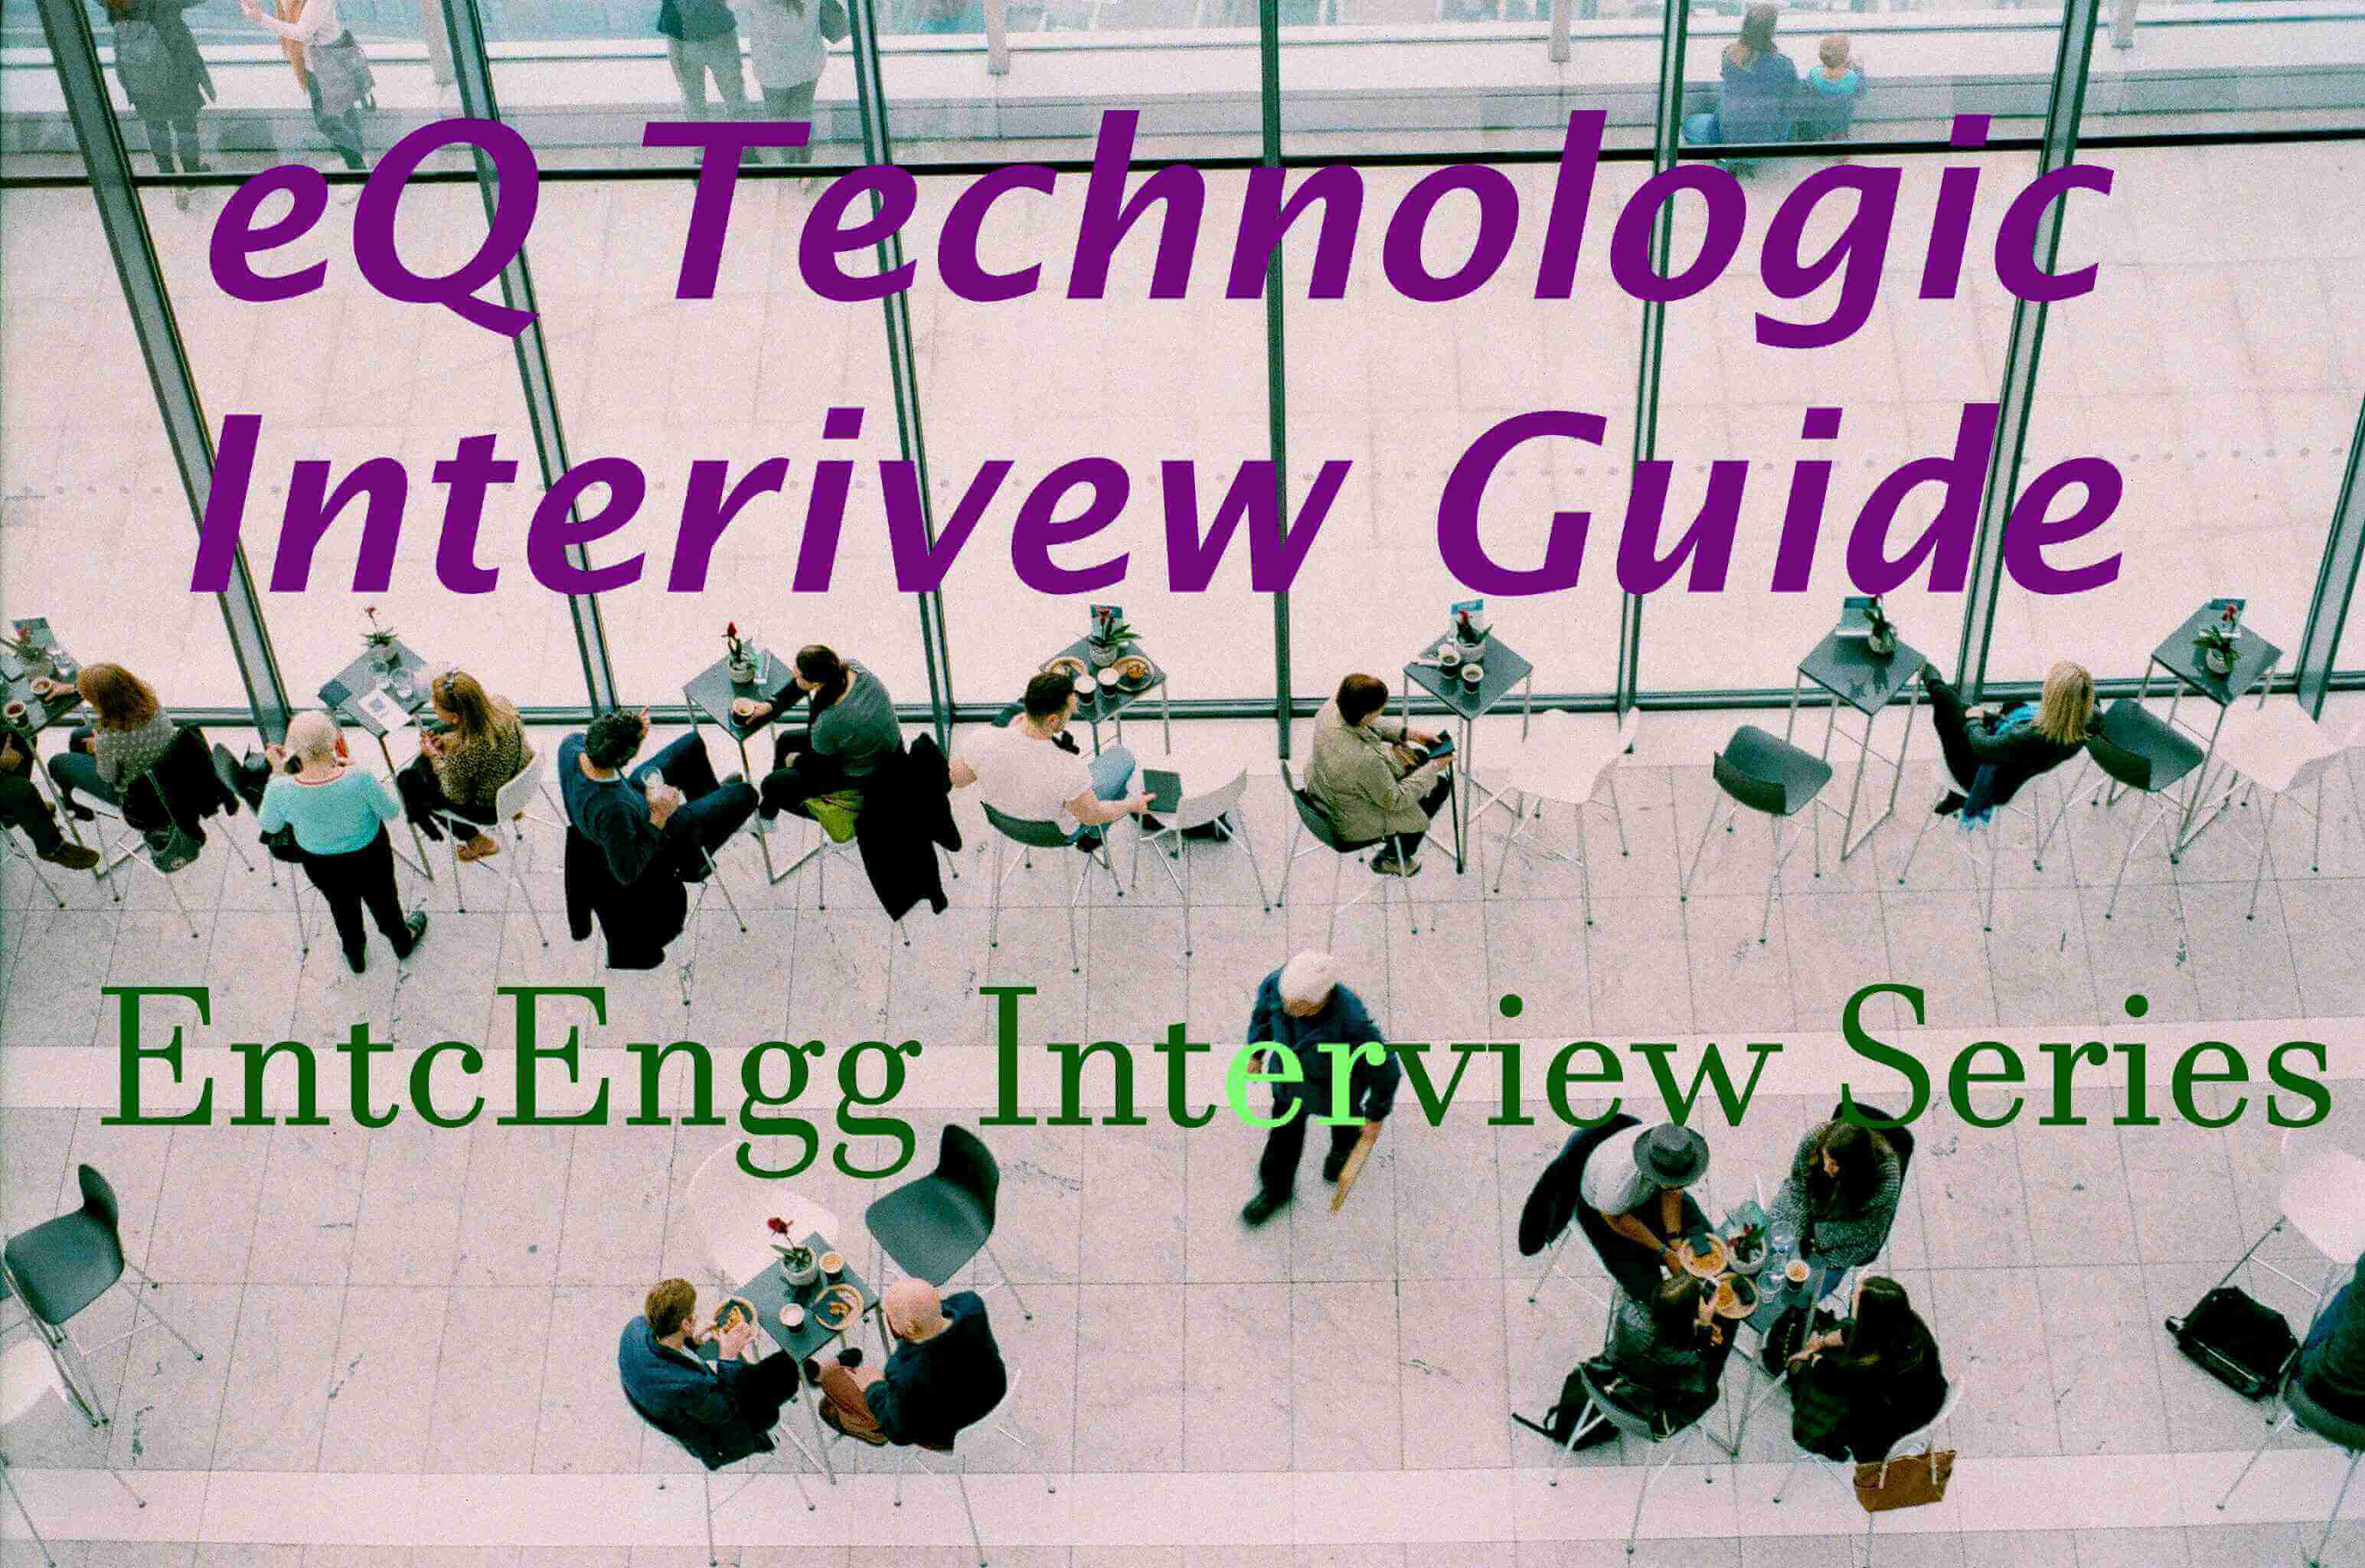 eq technologic interview code